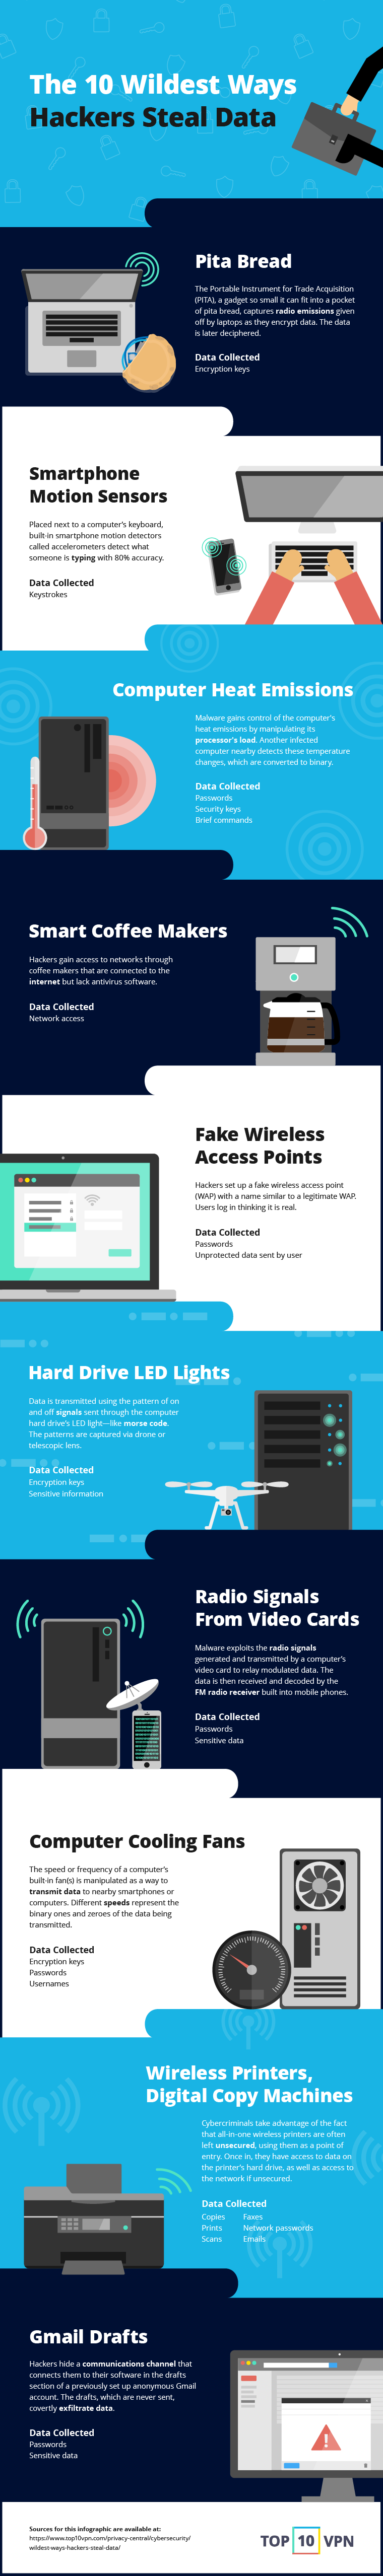 10 Wildest Ways Hackers Steal Data - #infographic